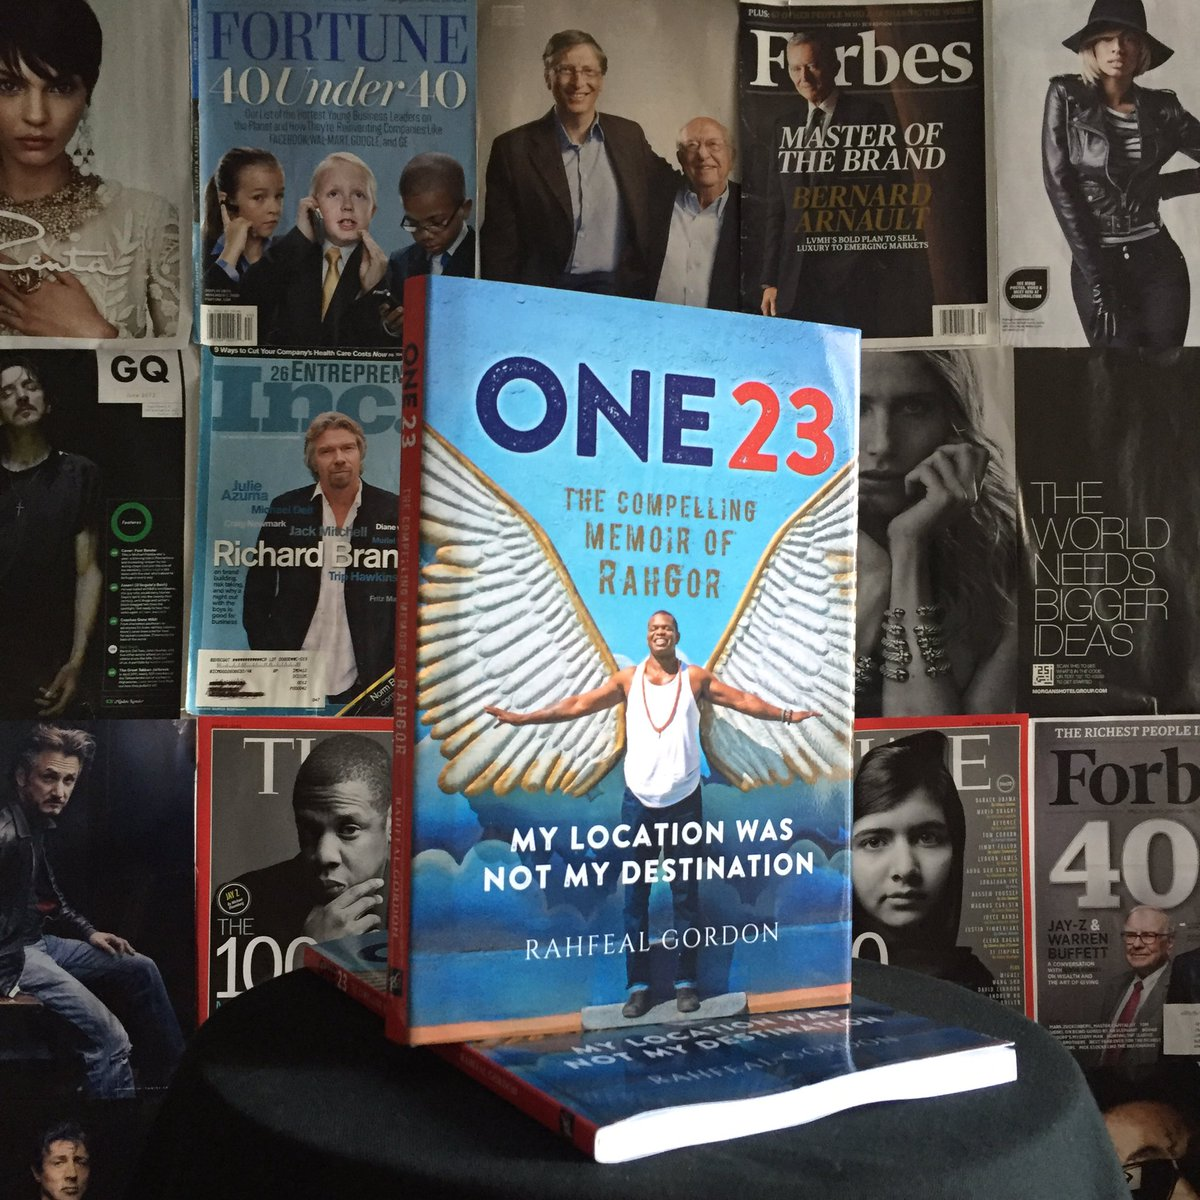 One23 is now AVAILABLE worldwide! Pick up your copy today!  https://t.co/gn7ihMyvEl + https://t.co/V2N9yVklUu https://t.co/rfNZBu2Ekq